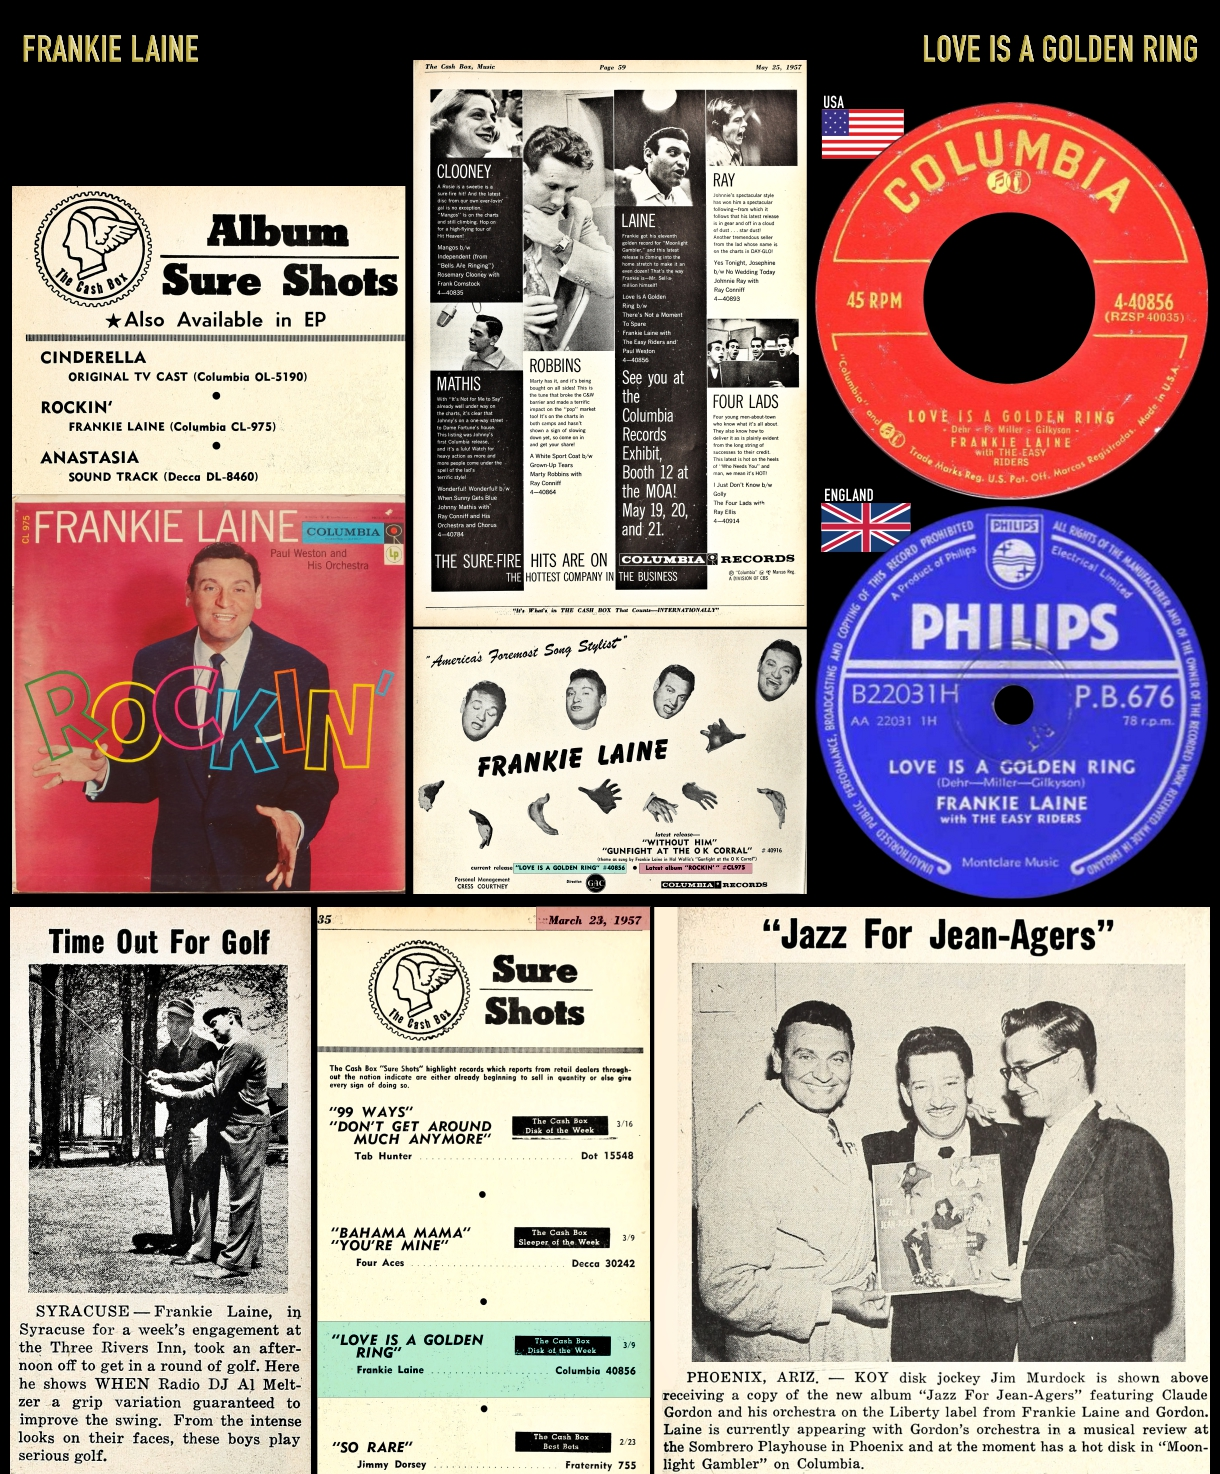 570330_Frankie Laine_Love Is A Golden Ring